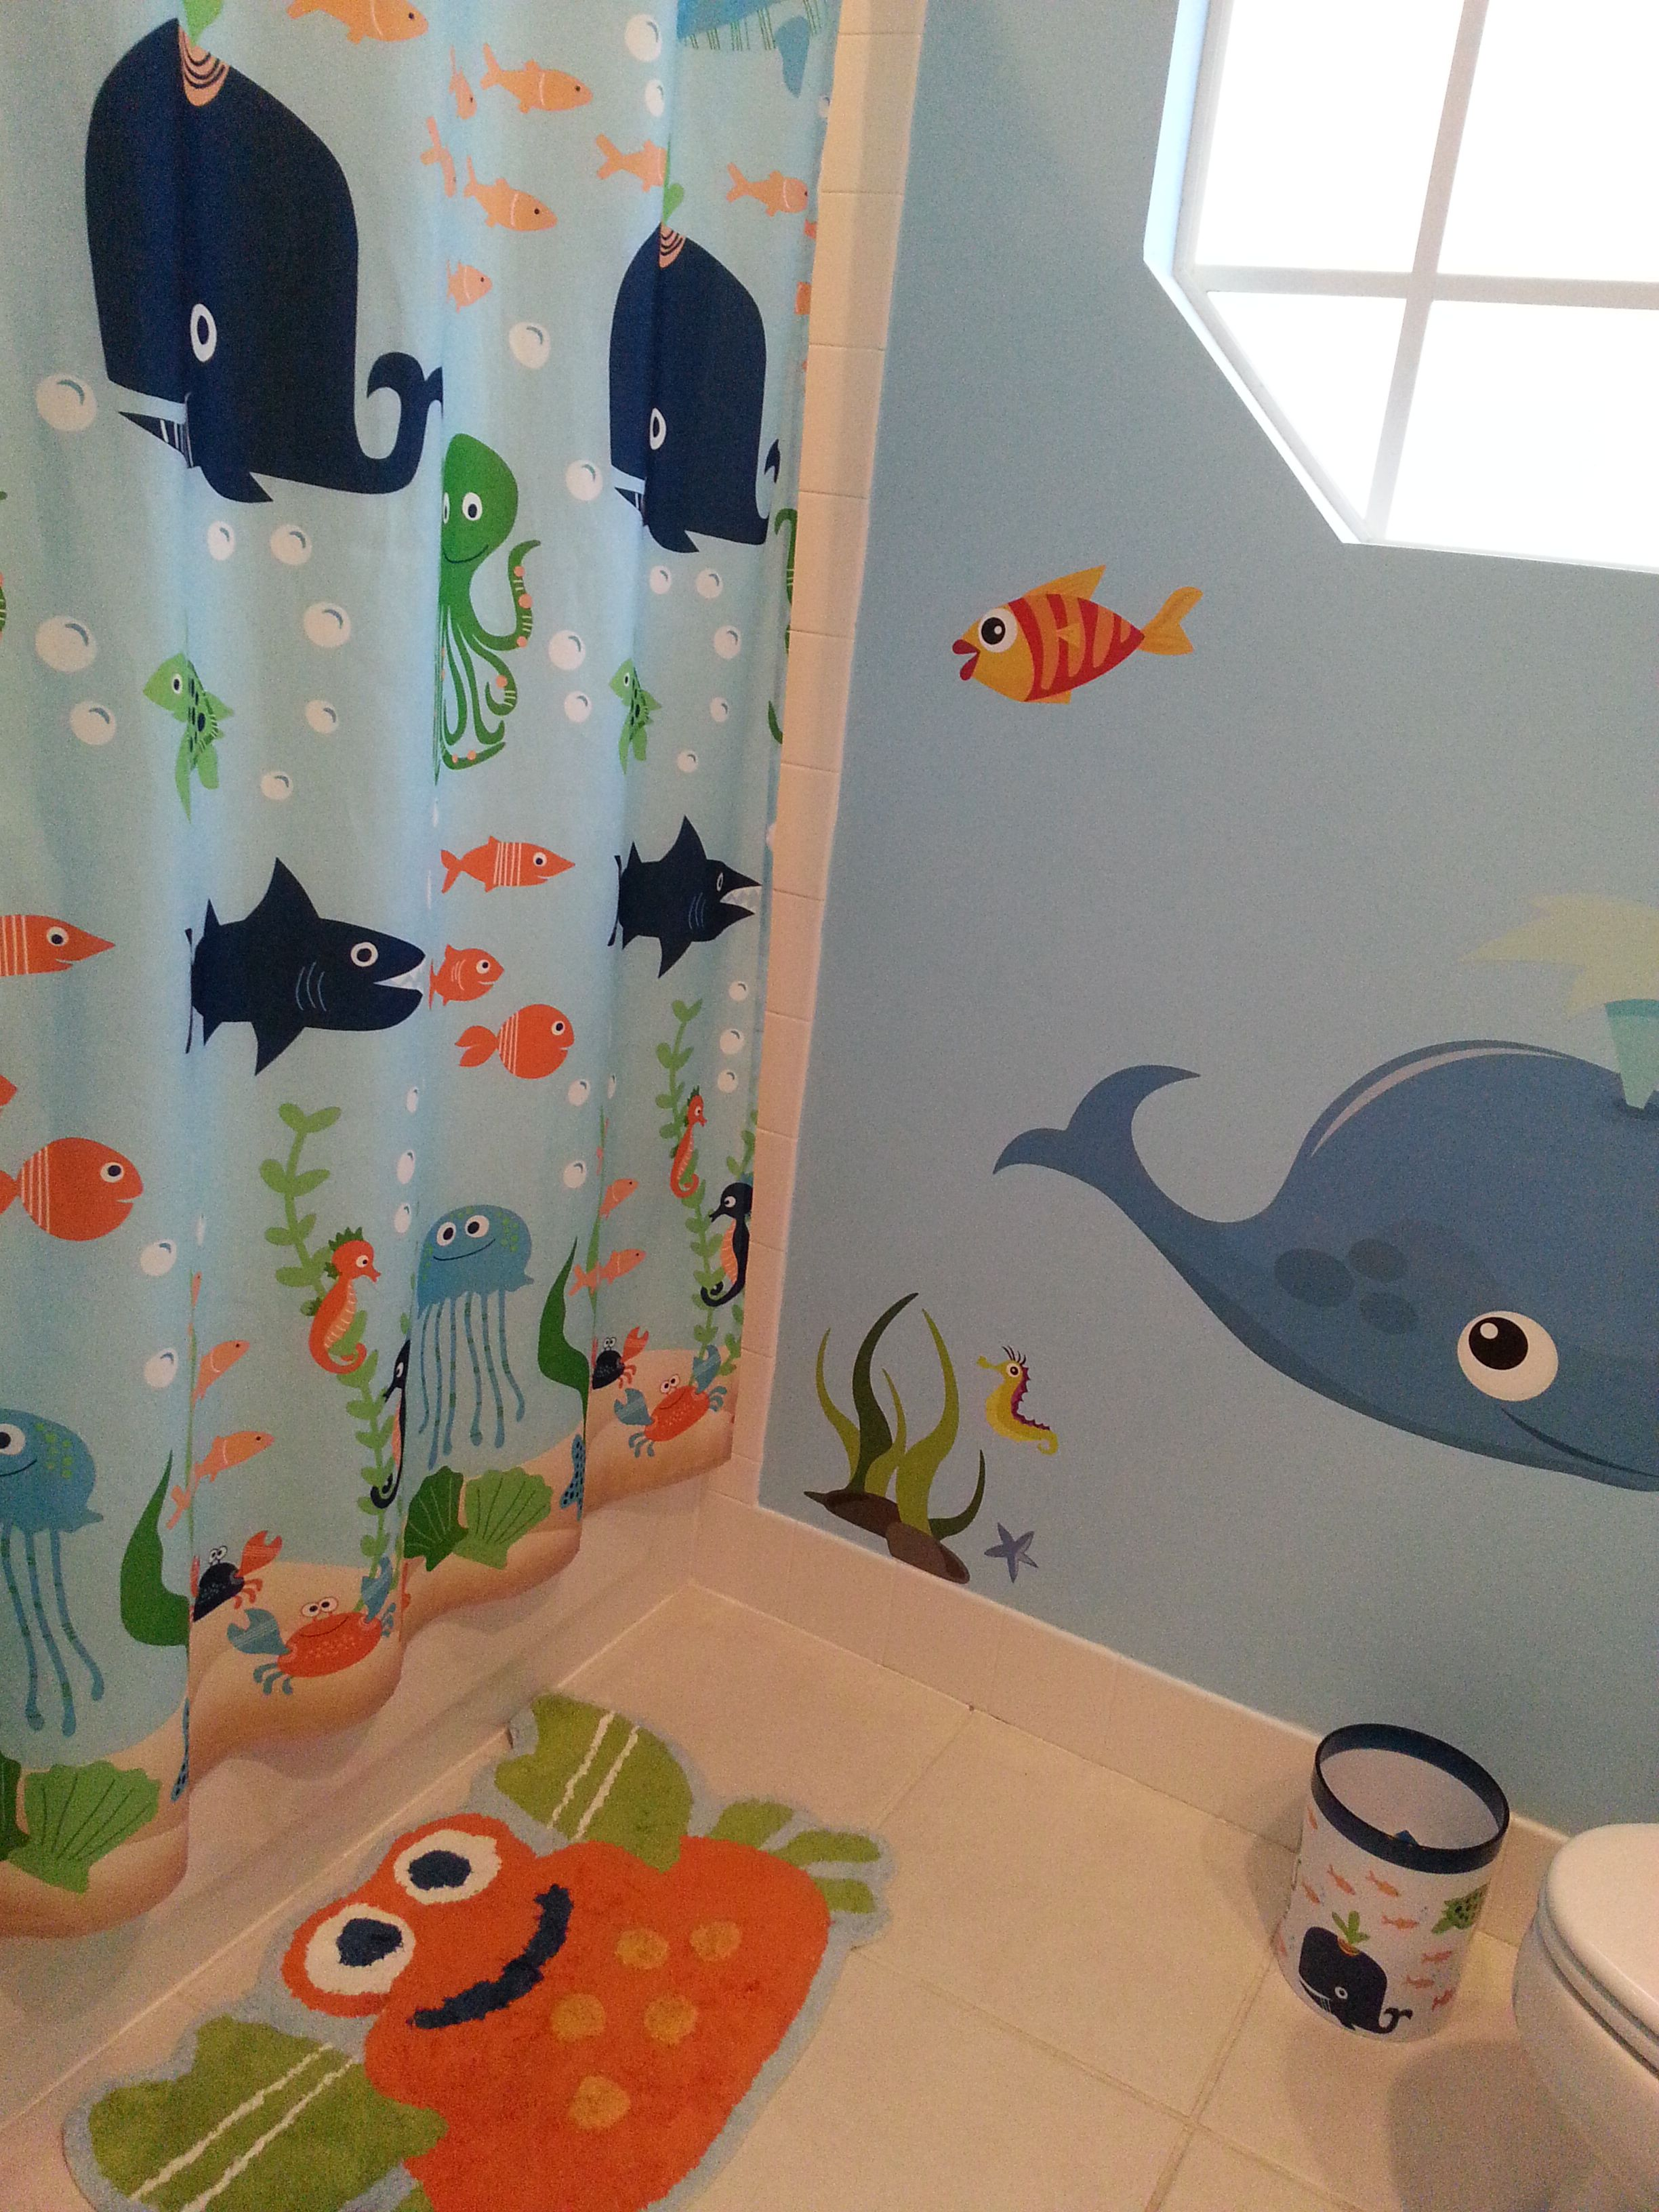 Under The Sea Bathroom Kids Bathroom Decor Boys Boys Bathroom Decor Kids Bathroom Themes